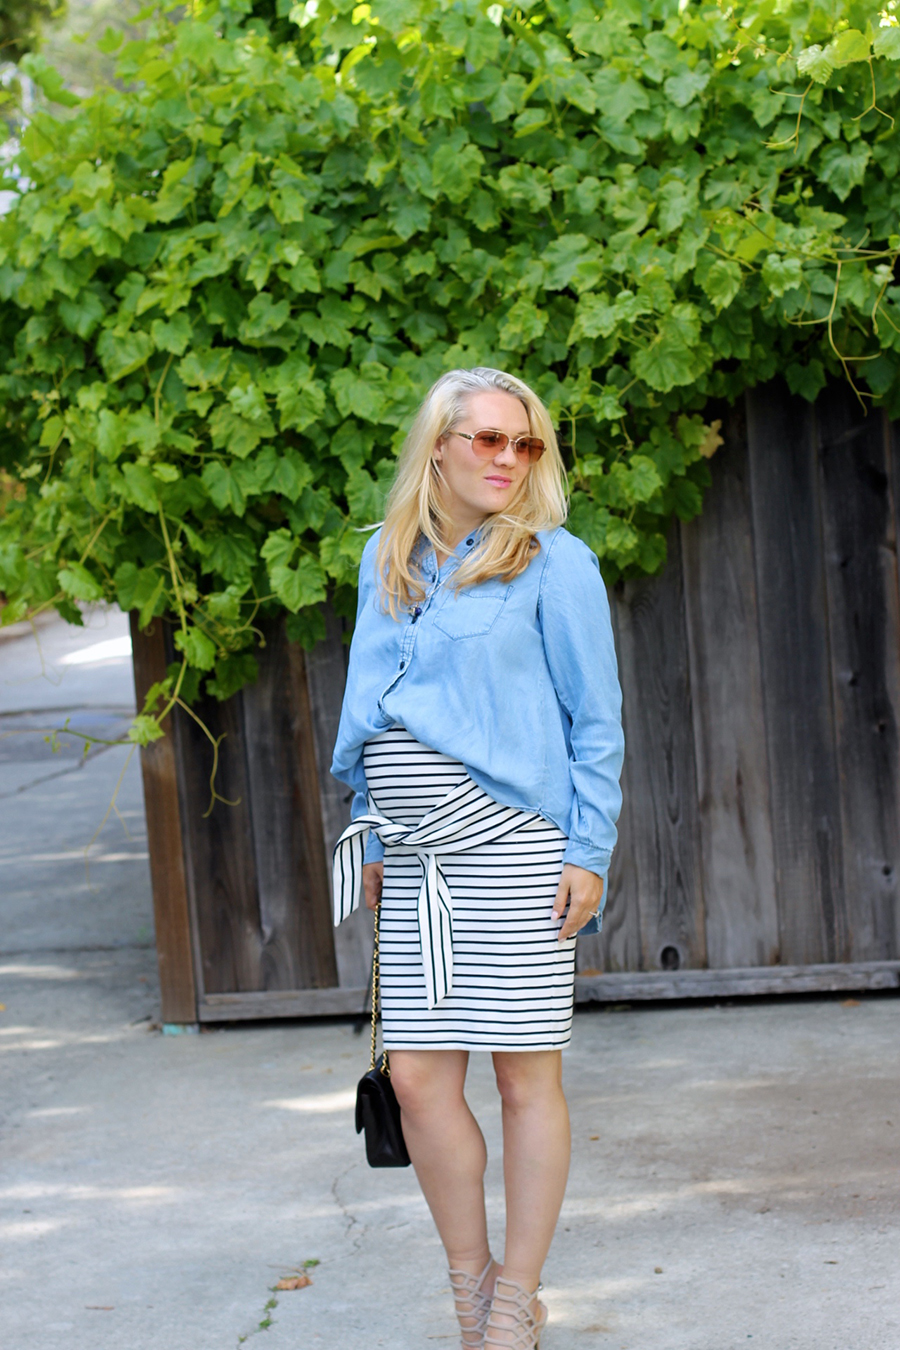 Kingdom & State-Tie Front Skirt-Maternity Style-Pregnancy Style-Chambray Top-Target Style-Have Need Want 3